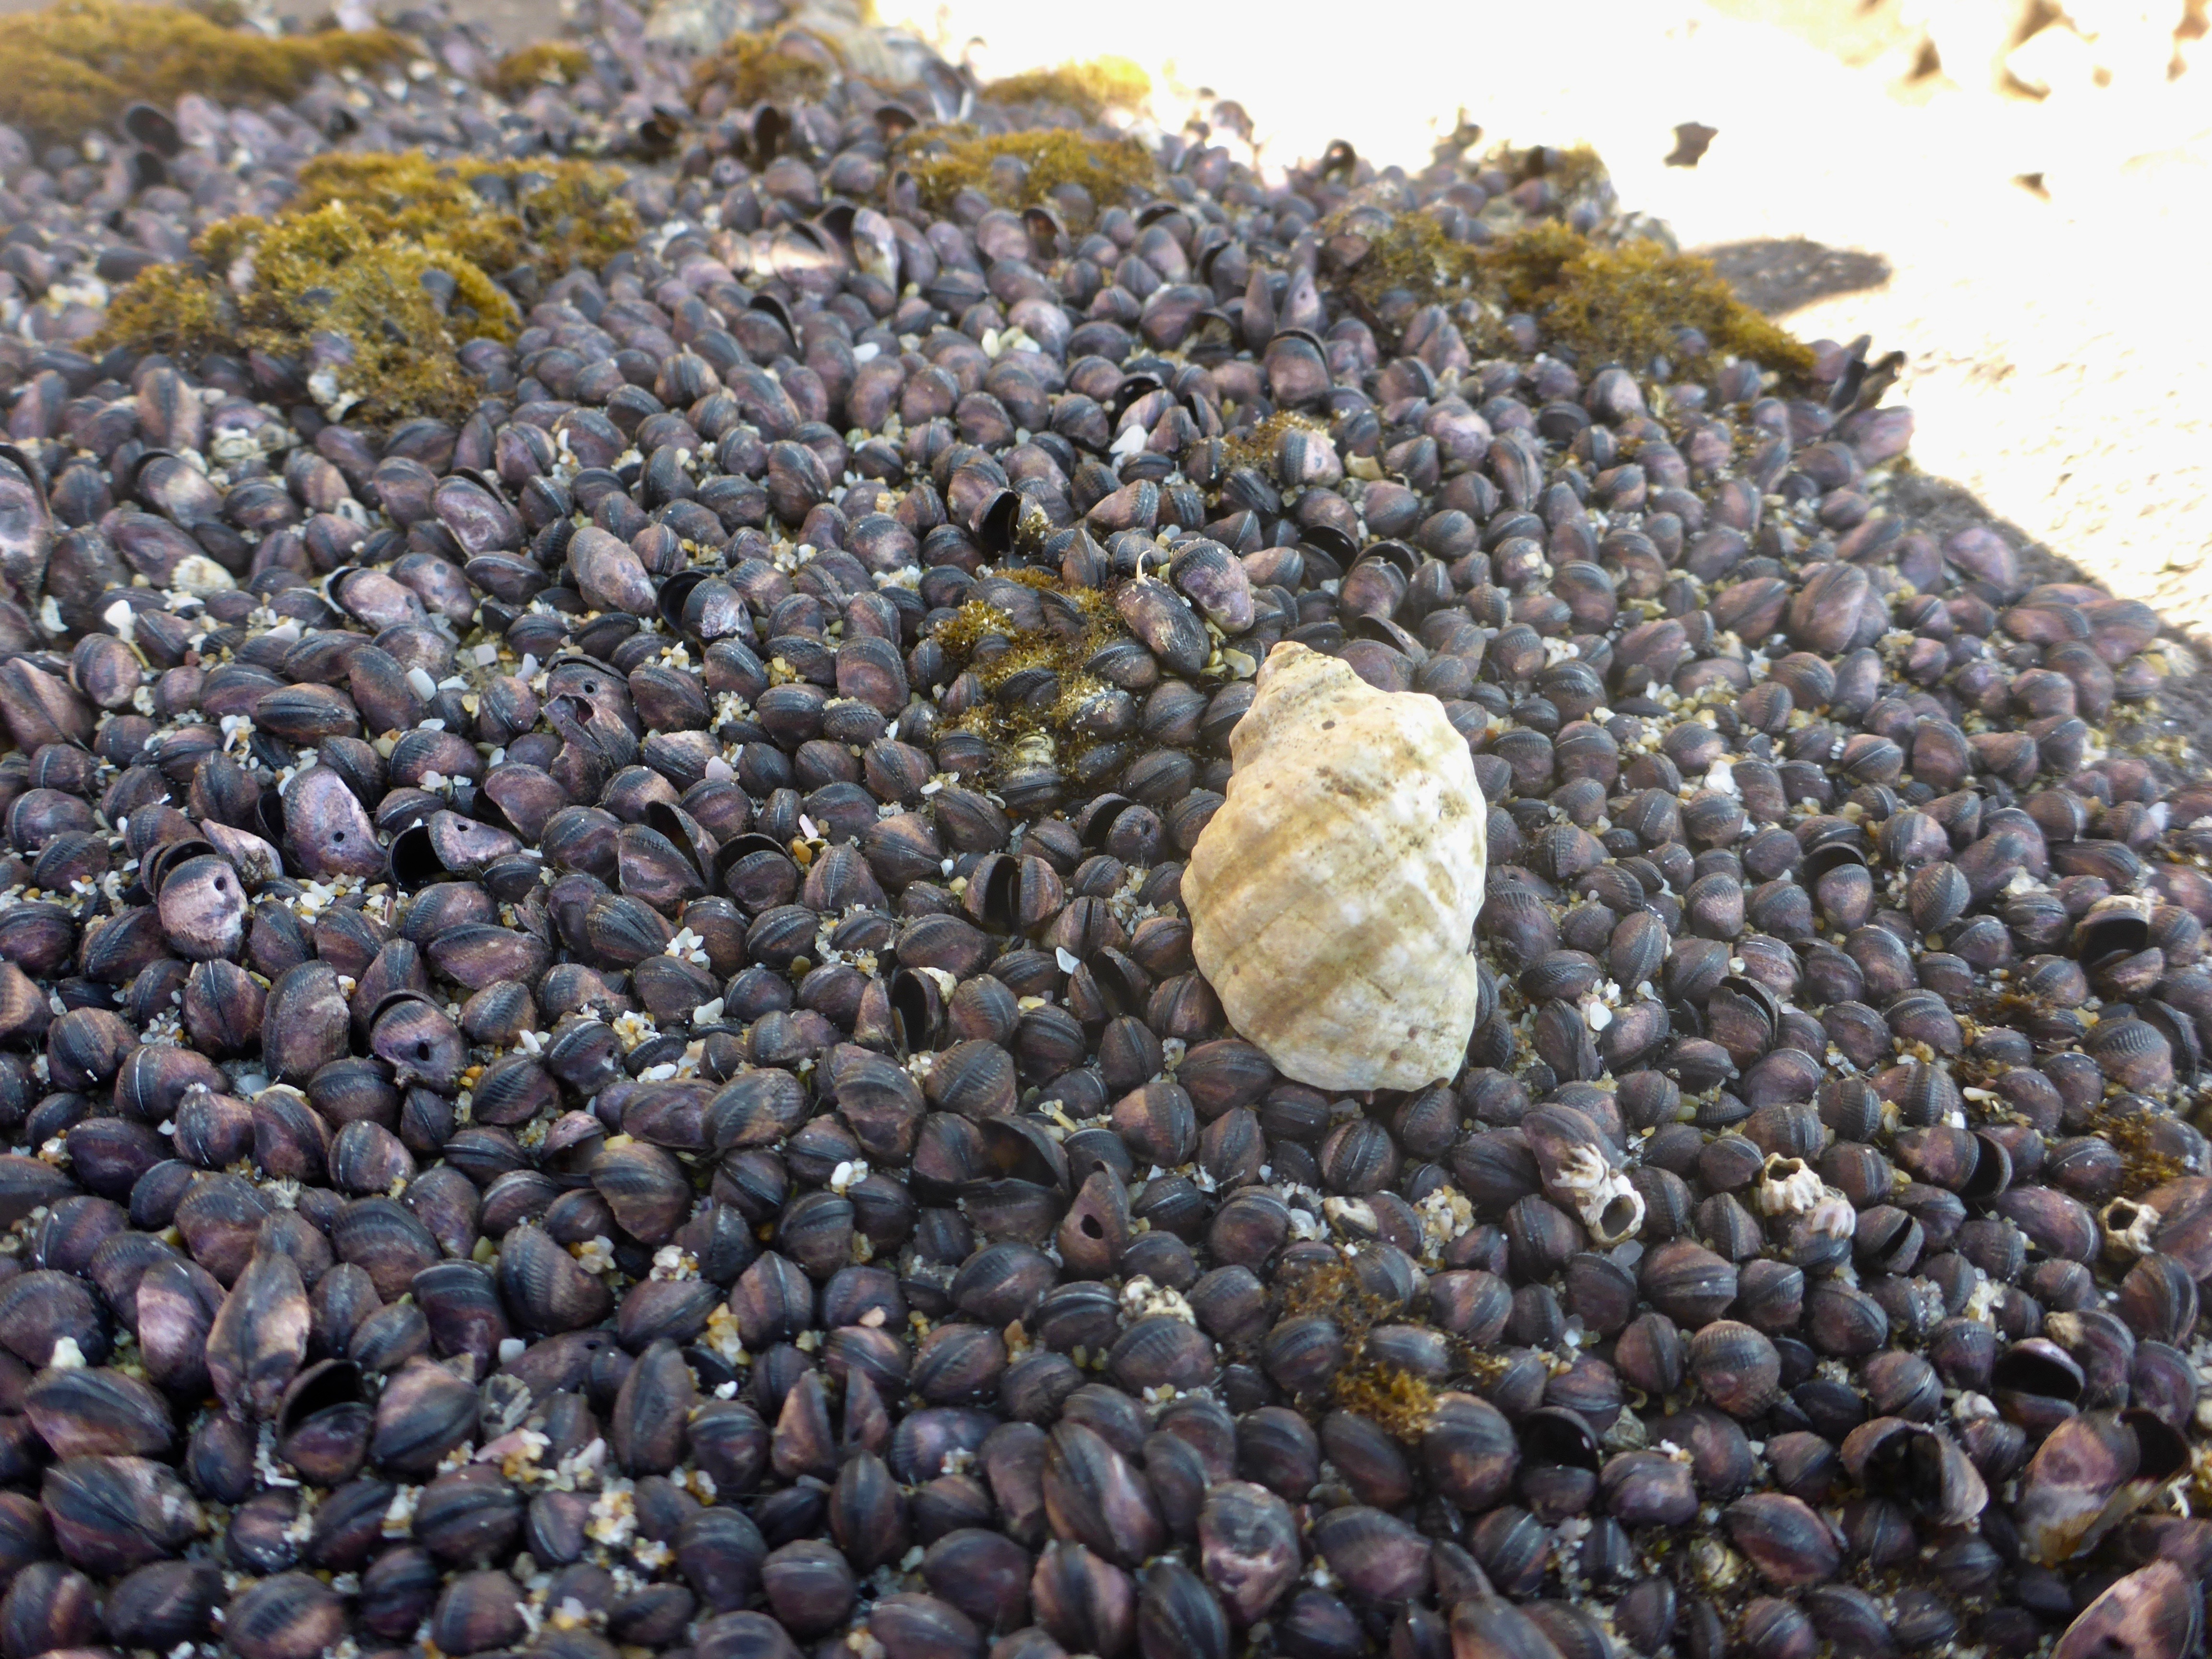 A large snail shell resting on hundreds of mussell shells, some of which have small round holes in their shell.